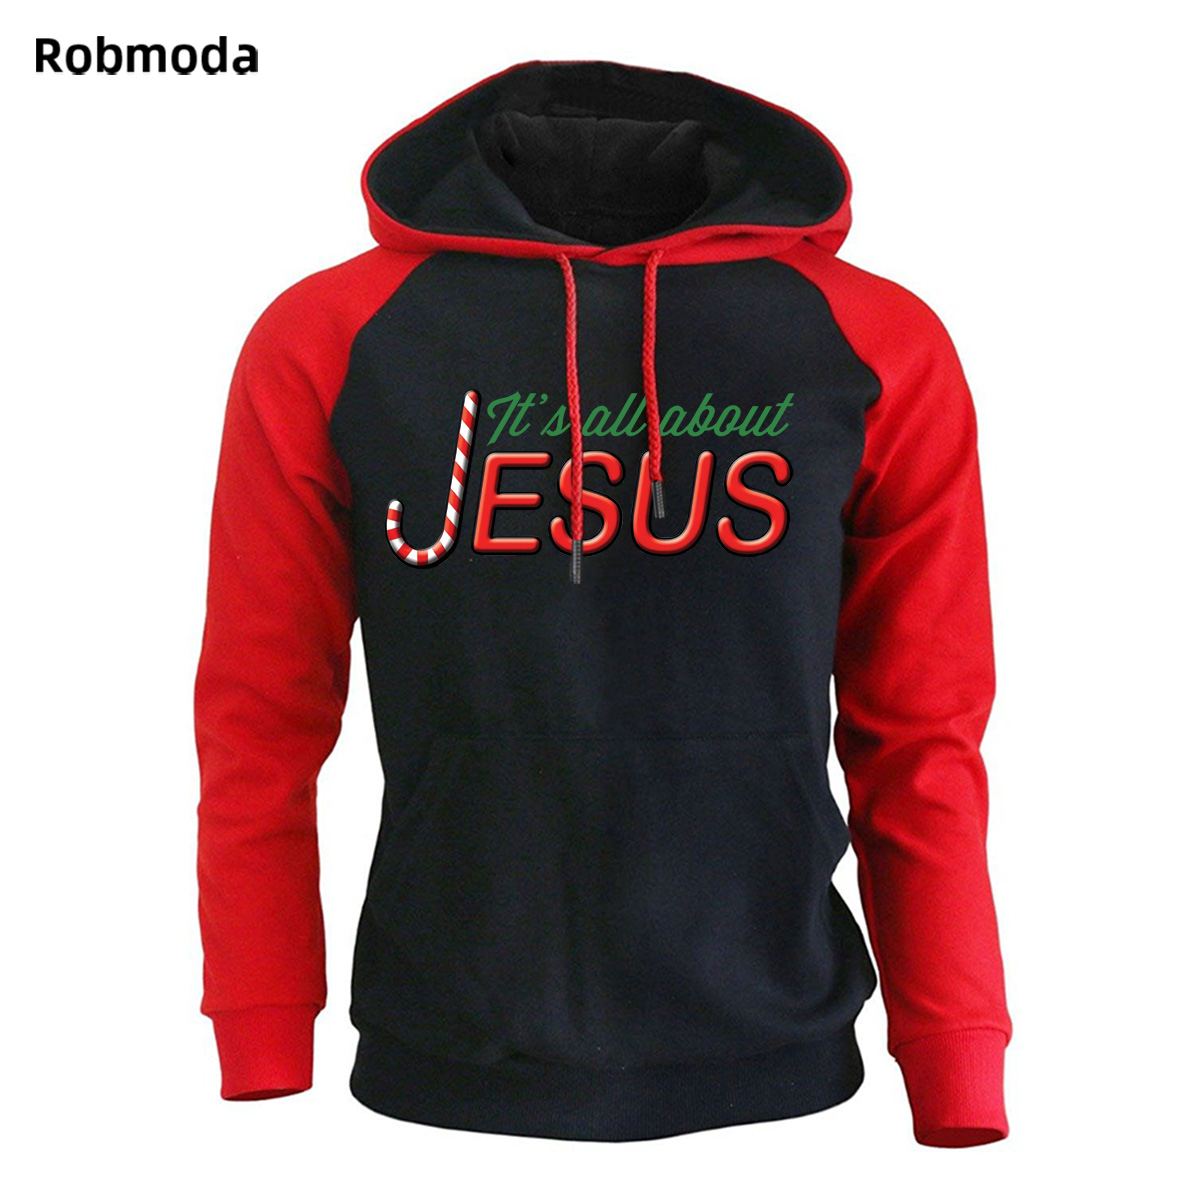 2019 men 39 s Hot sale clothing jesus Christmas letter print hooded sweatshirt Loose casual Sportswear Fleece pullovers hoodies in Hoodies amp Sweatshirts from Men 39 s Clothing